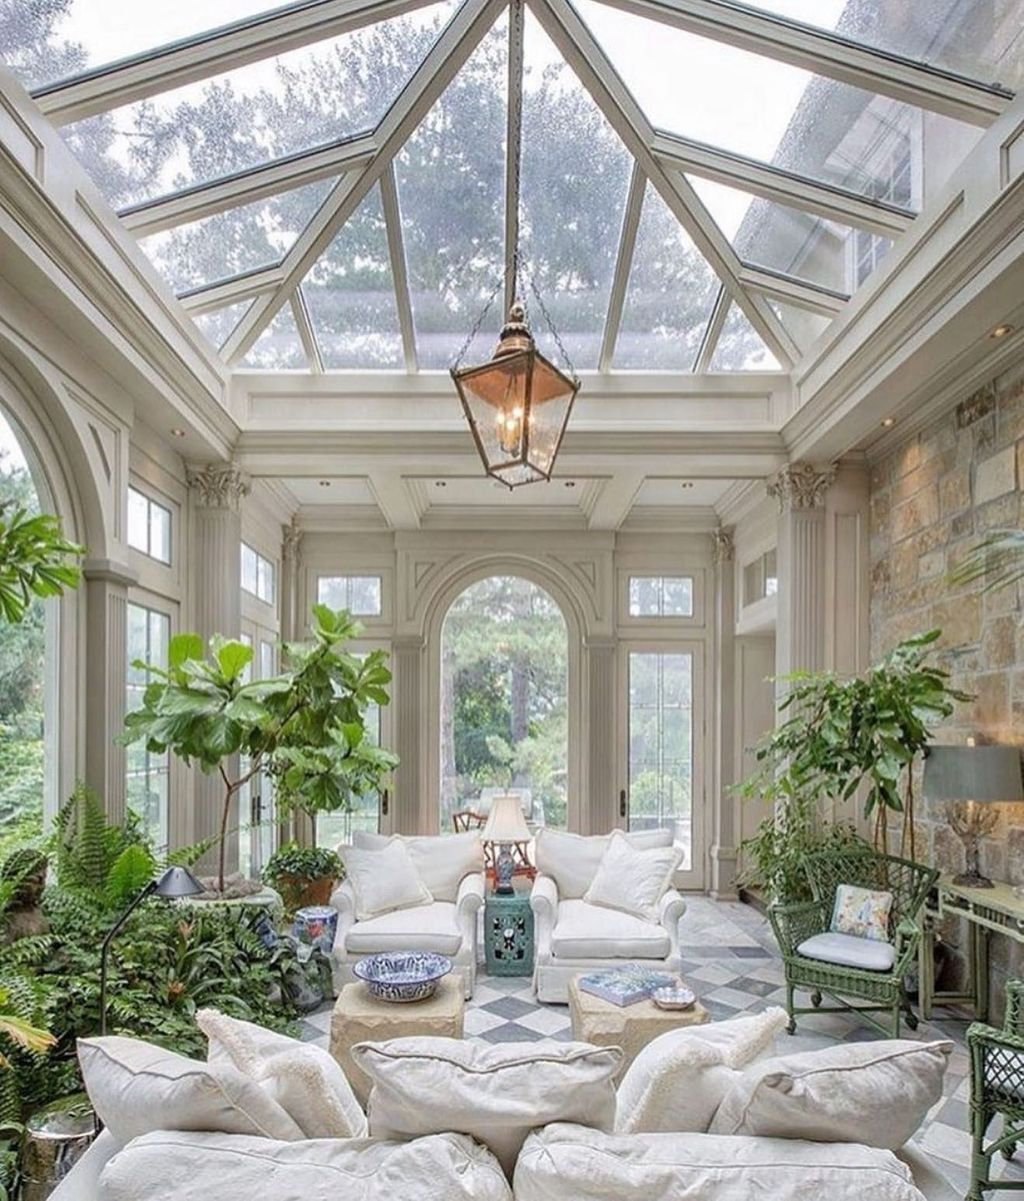 Admirable Sunroom Design Ideas You Must Have 25